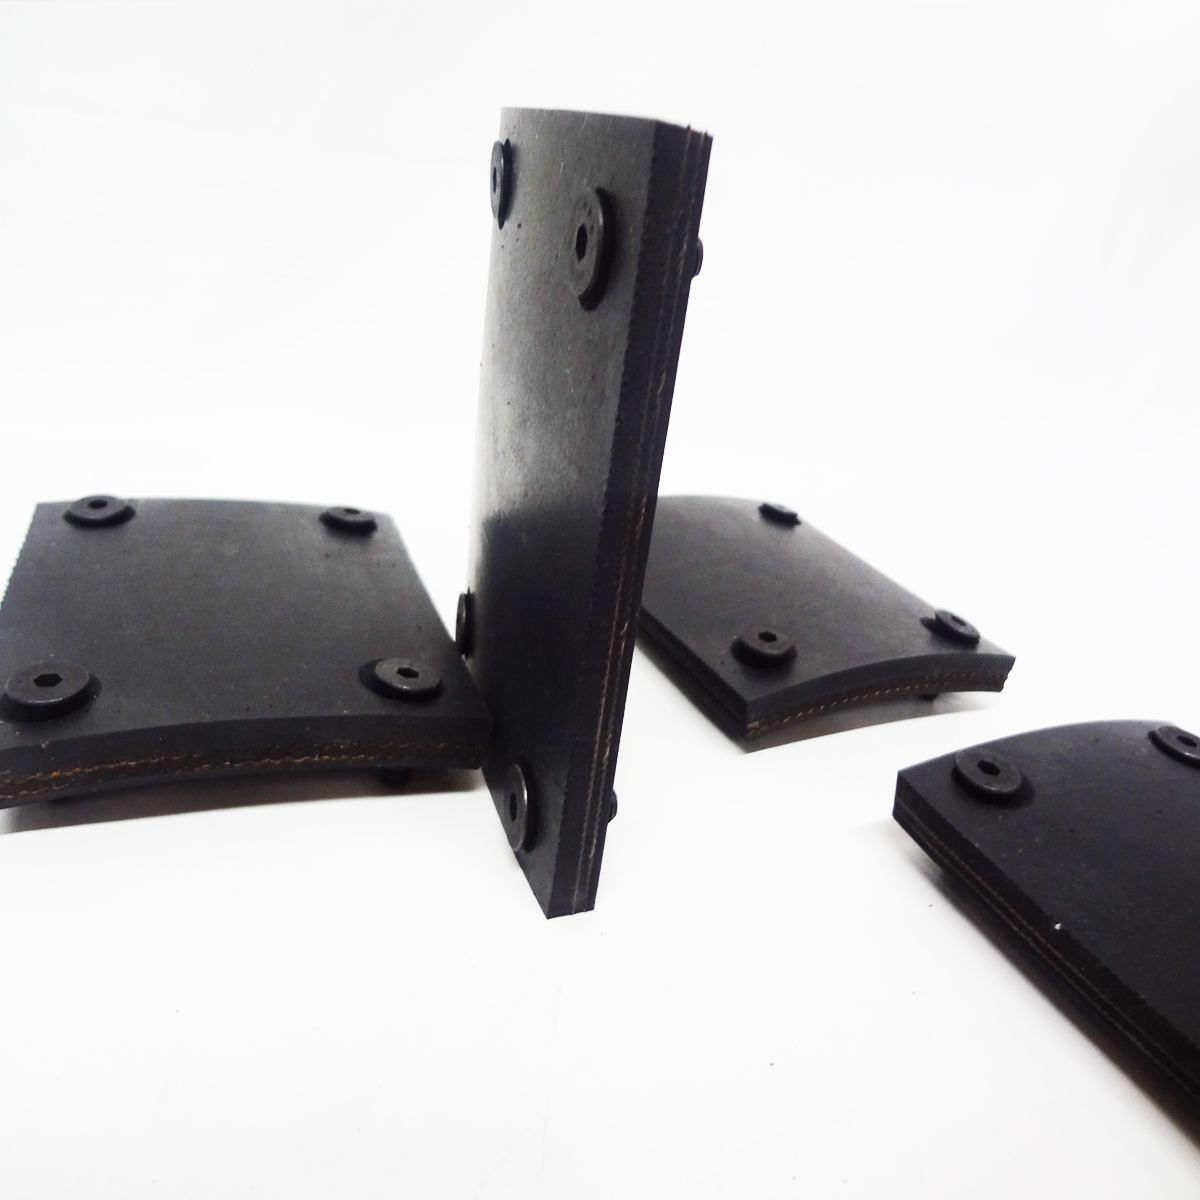 Rotary Lift Replacement Parts : Rotary lift rubber arm pad set of fj